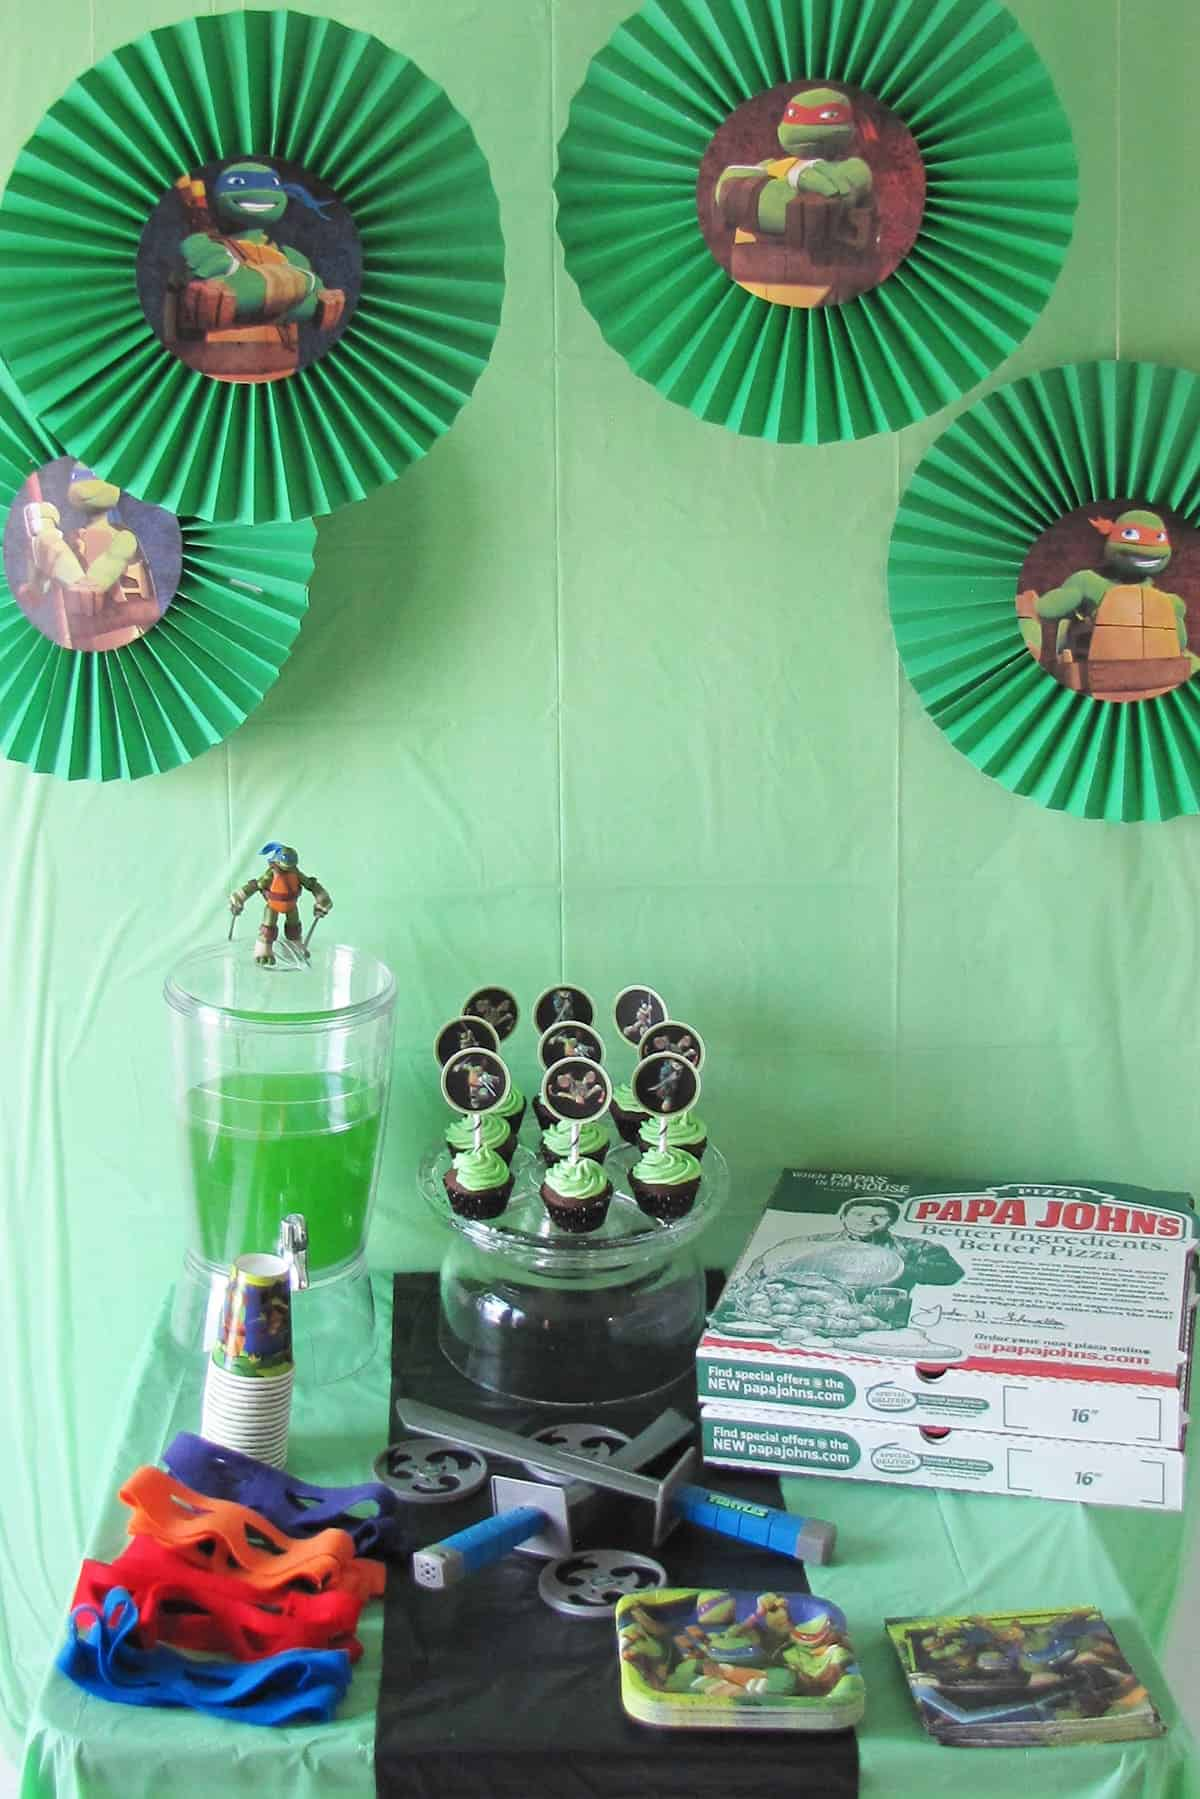 Ninja Turtle themed party table with cupcakes, green punch, pizza, masks, swords, ninja turtle paper products, and green backdrop with paper fans.